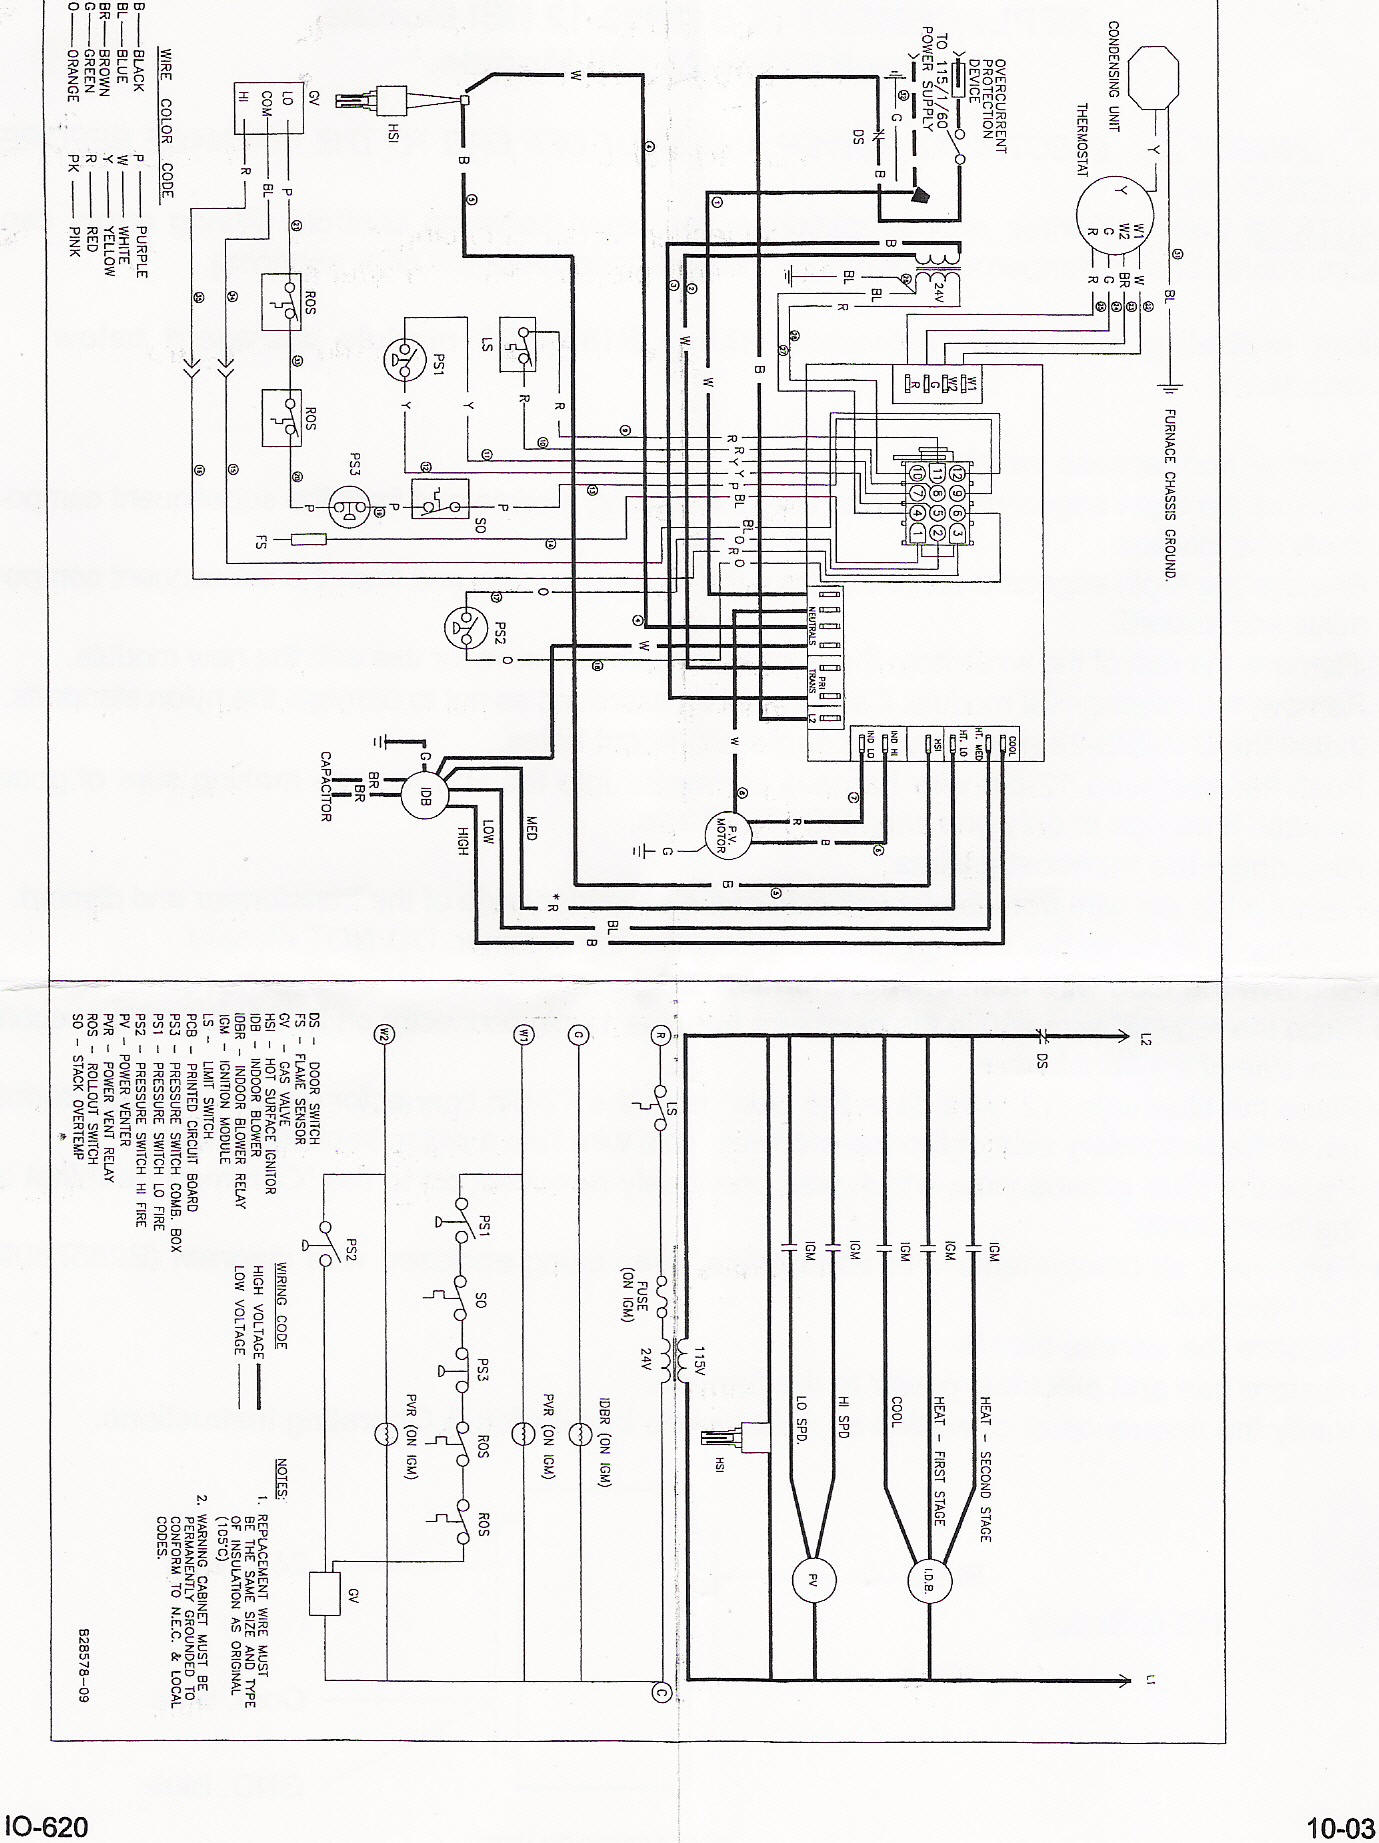 goodma2 instr goodman control board b18099 23 instructions goodman furnace wiring diagram at alyssarenee.co